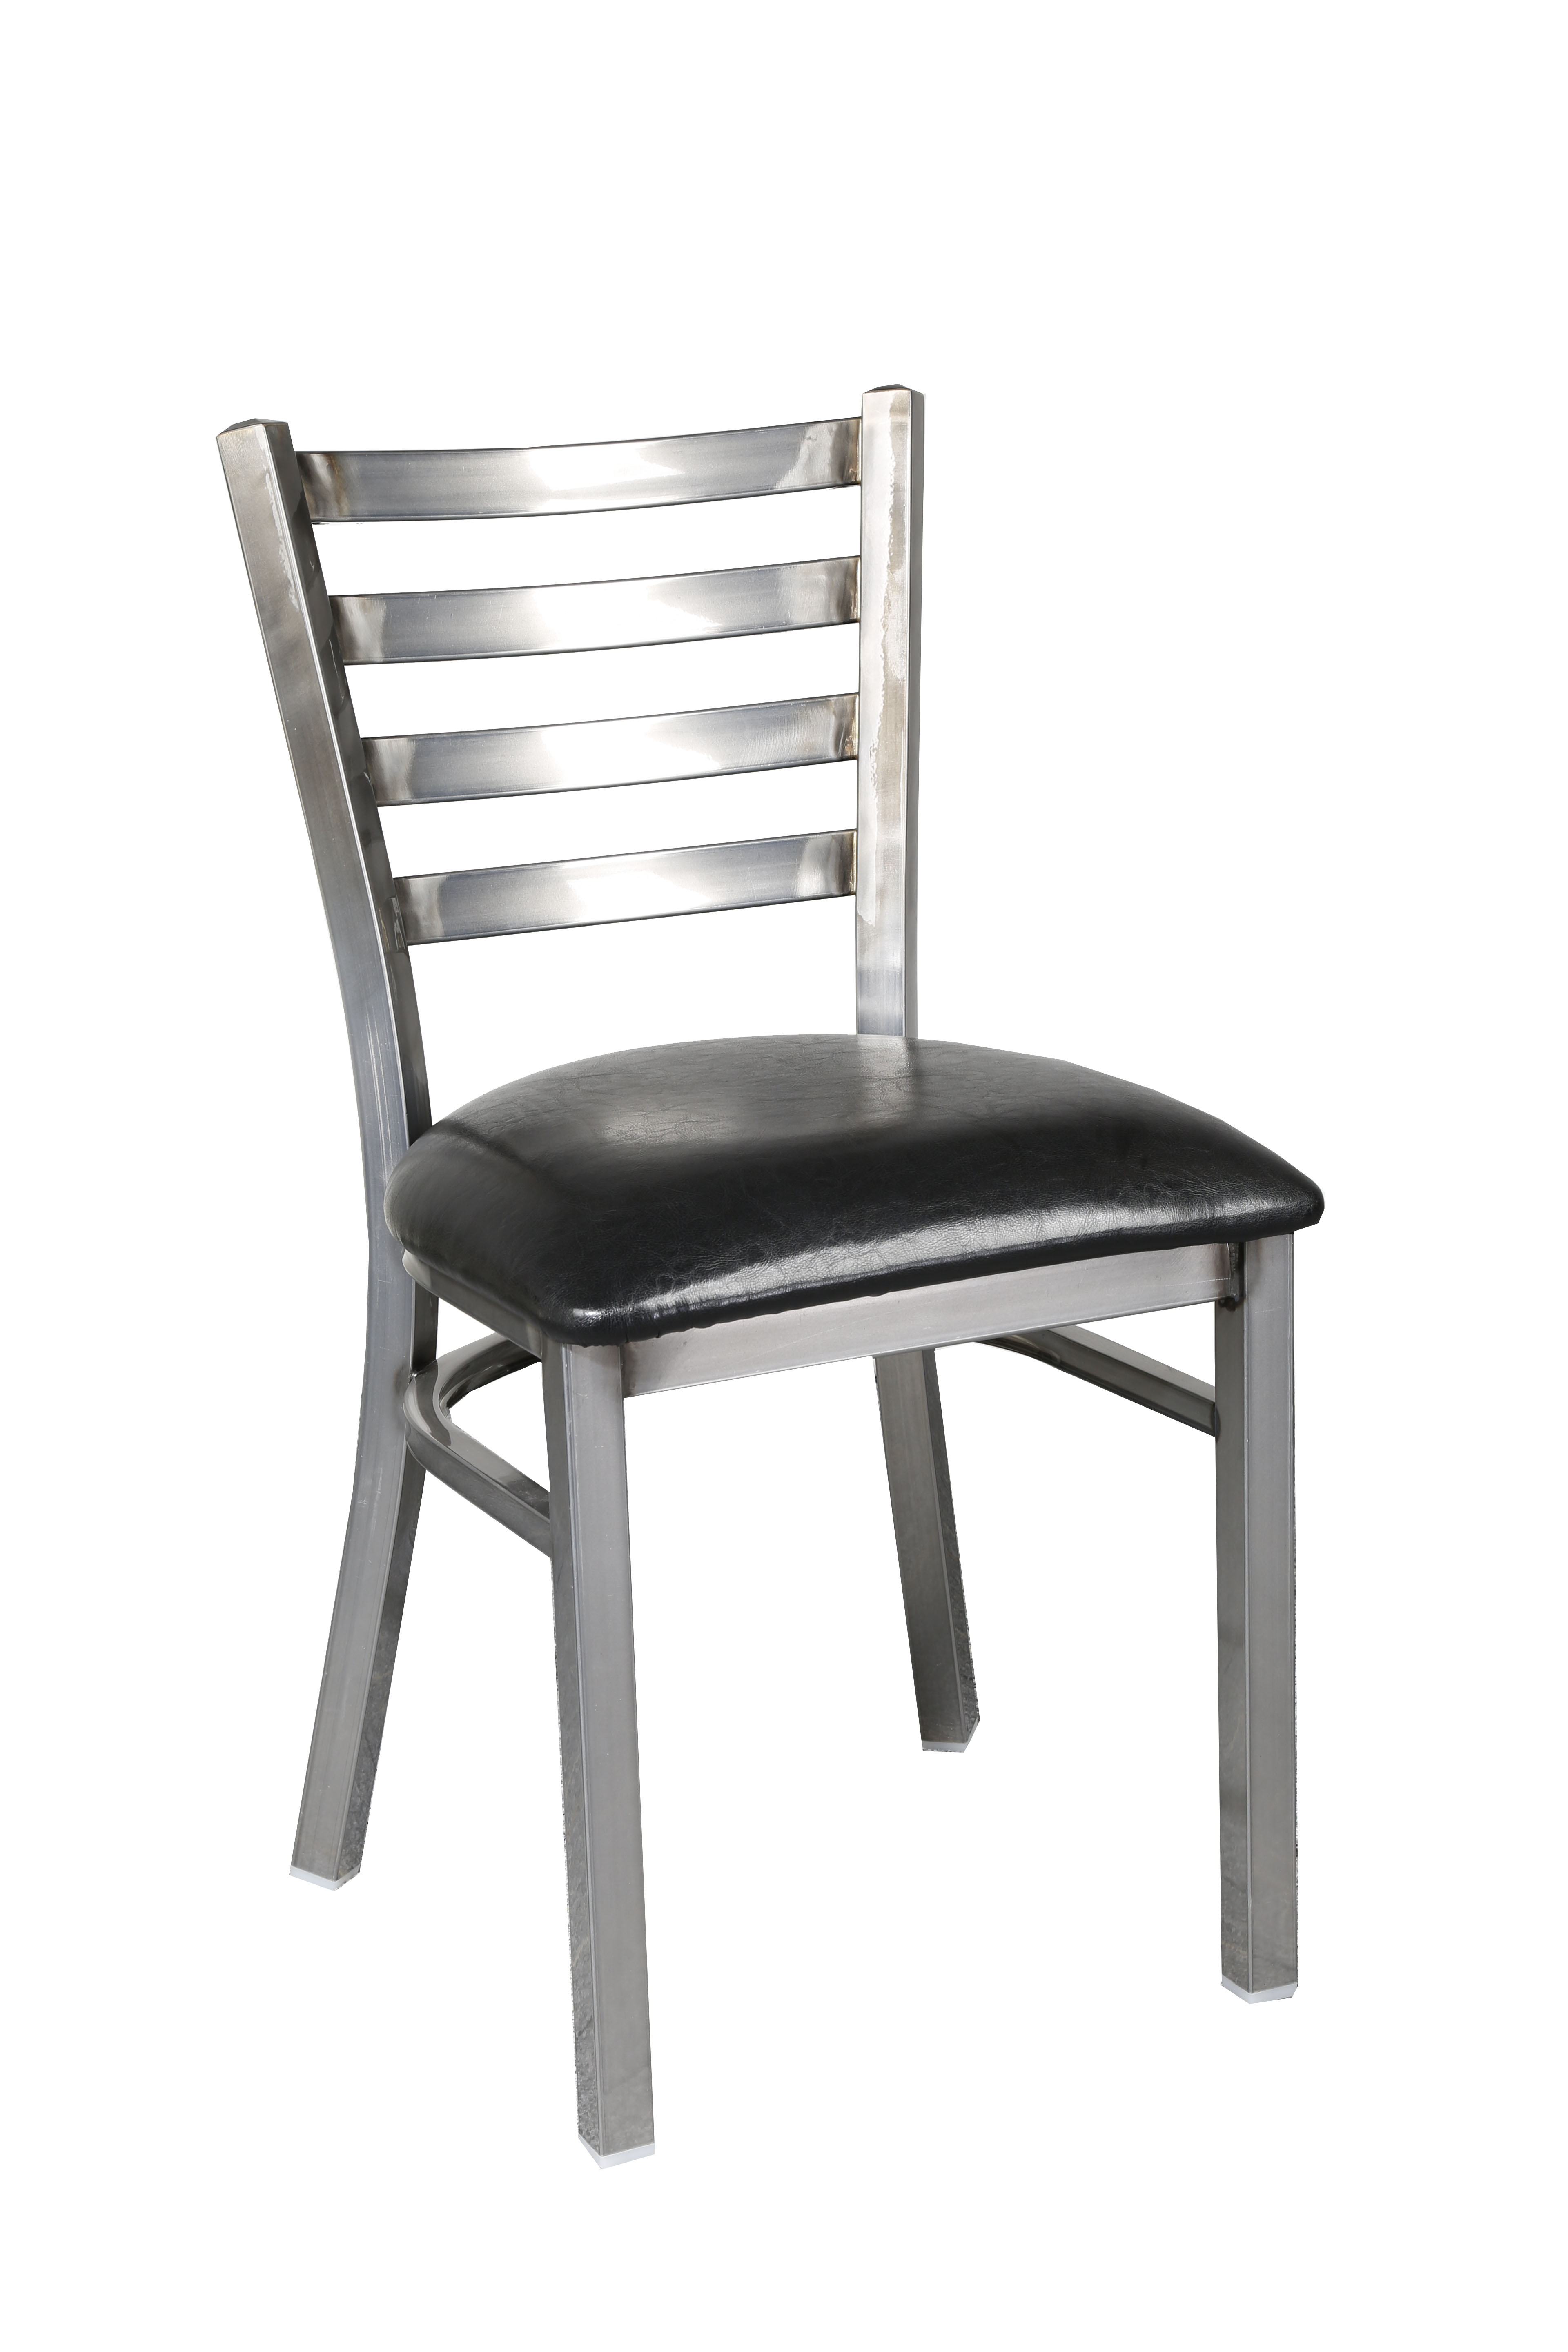 AAA Furniture Wholesale 316/CLEAR COAT GR4 chair, side, indoor